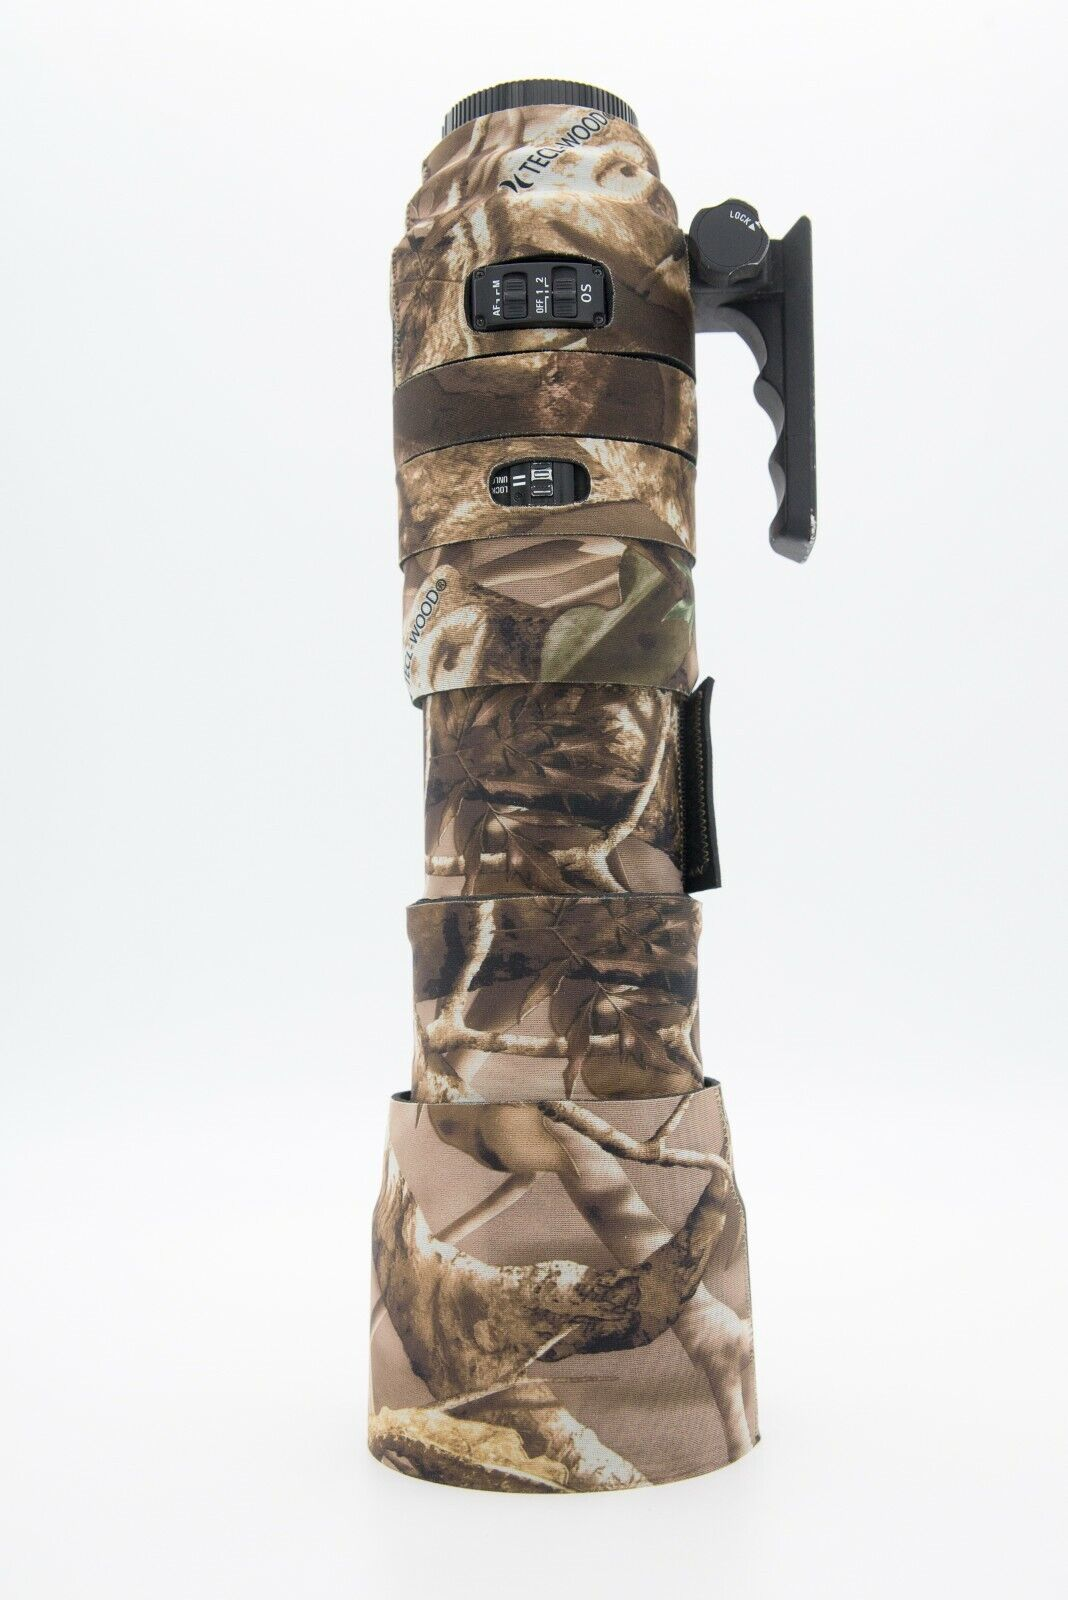 LensCamo Neoprene Camouflage Cover for Sigma 150-500 EX DG HSM (with zoom cover)